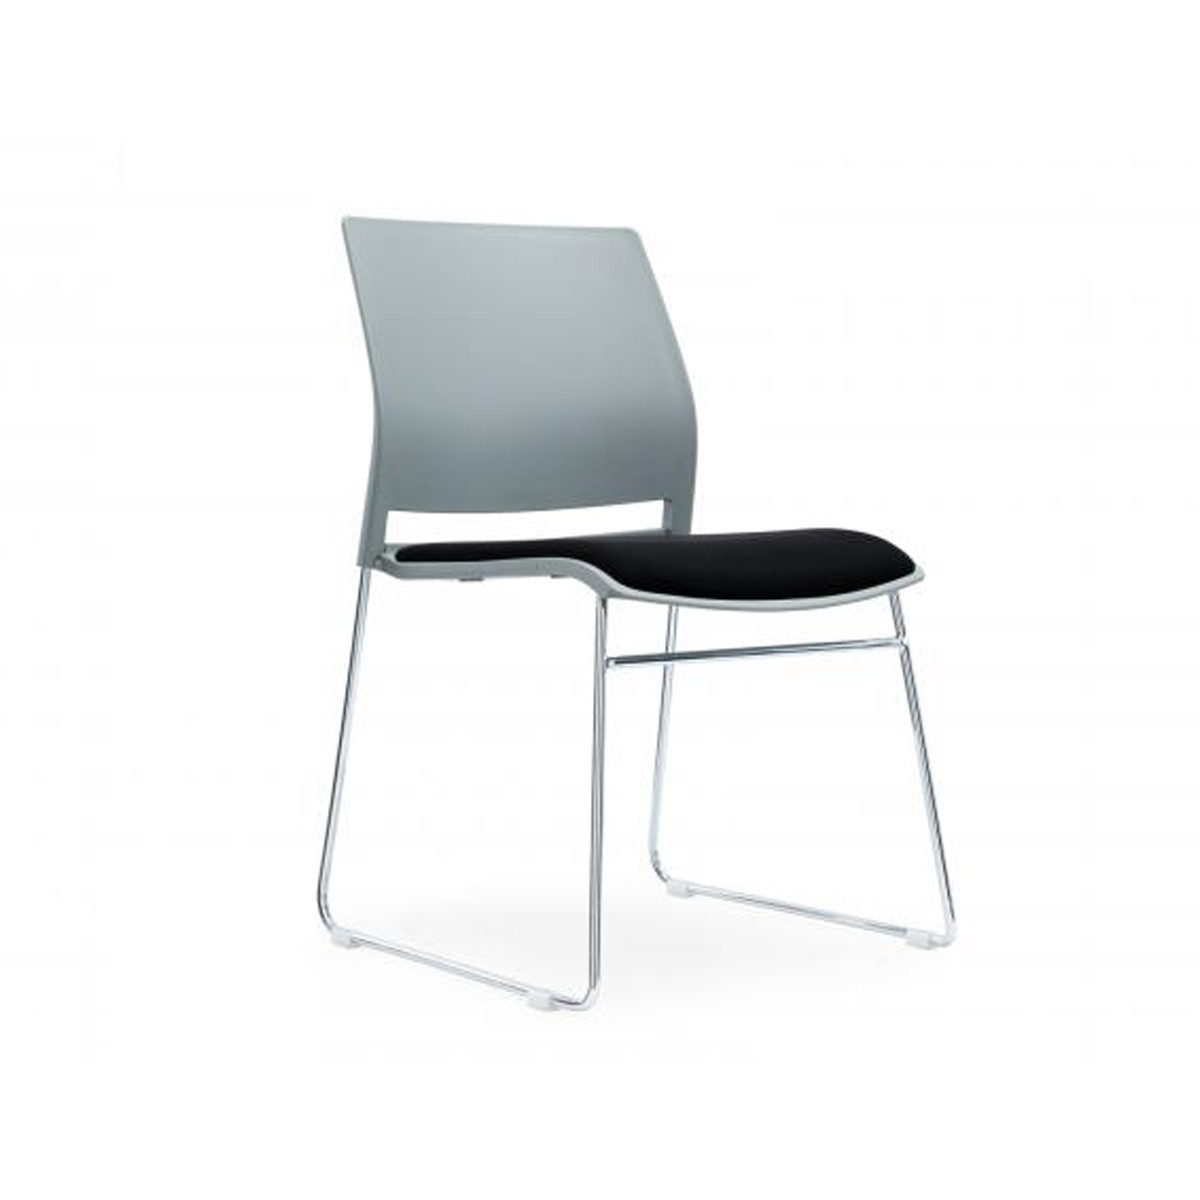 Verse Multiprurpose Stacking Chair Grey Shell and Black Fabric Seat Pan